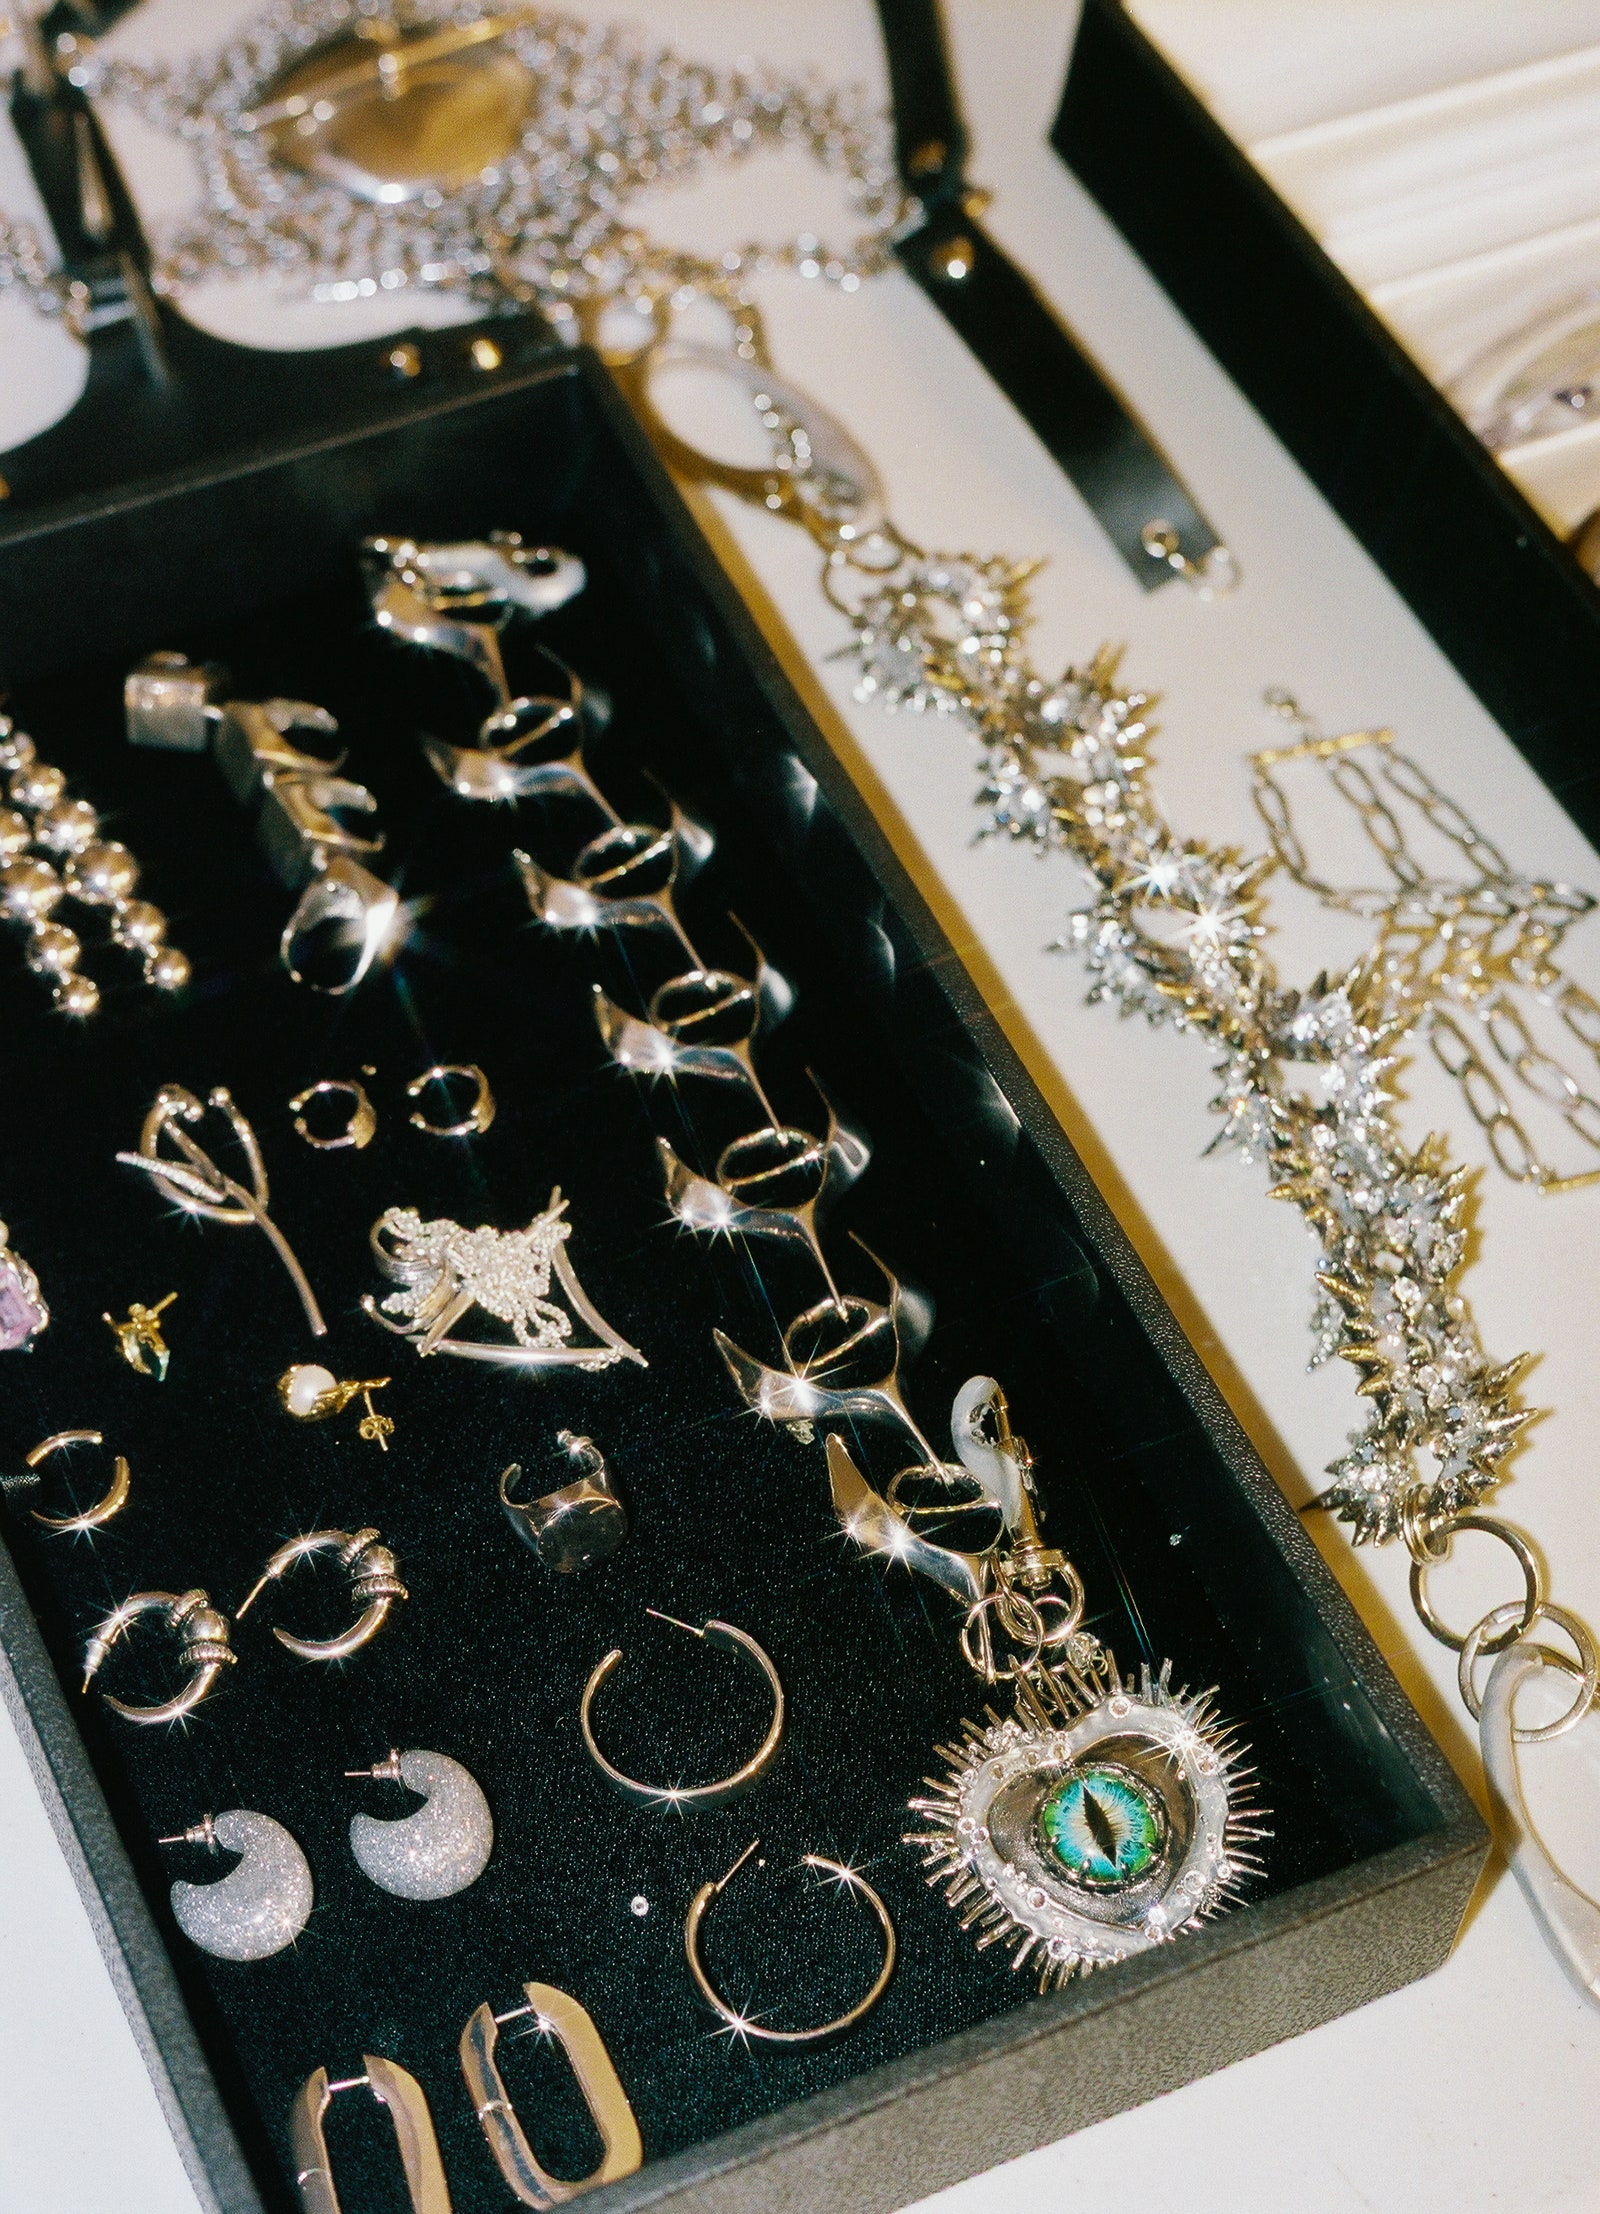 Epic jewelry selection courtesy of my stylist Chris Horan